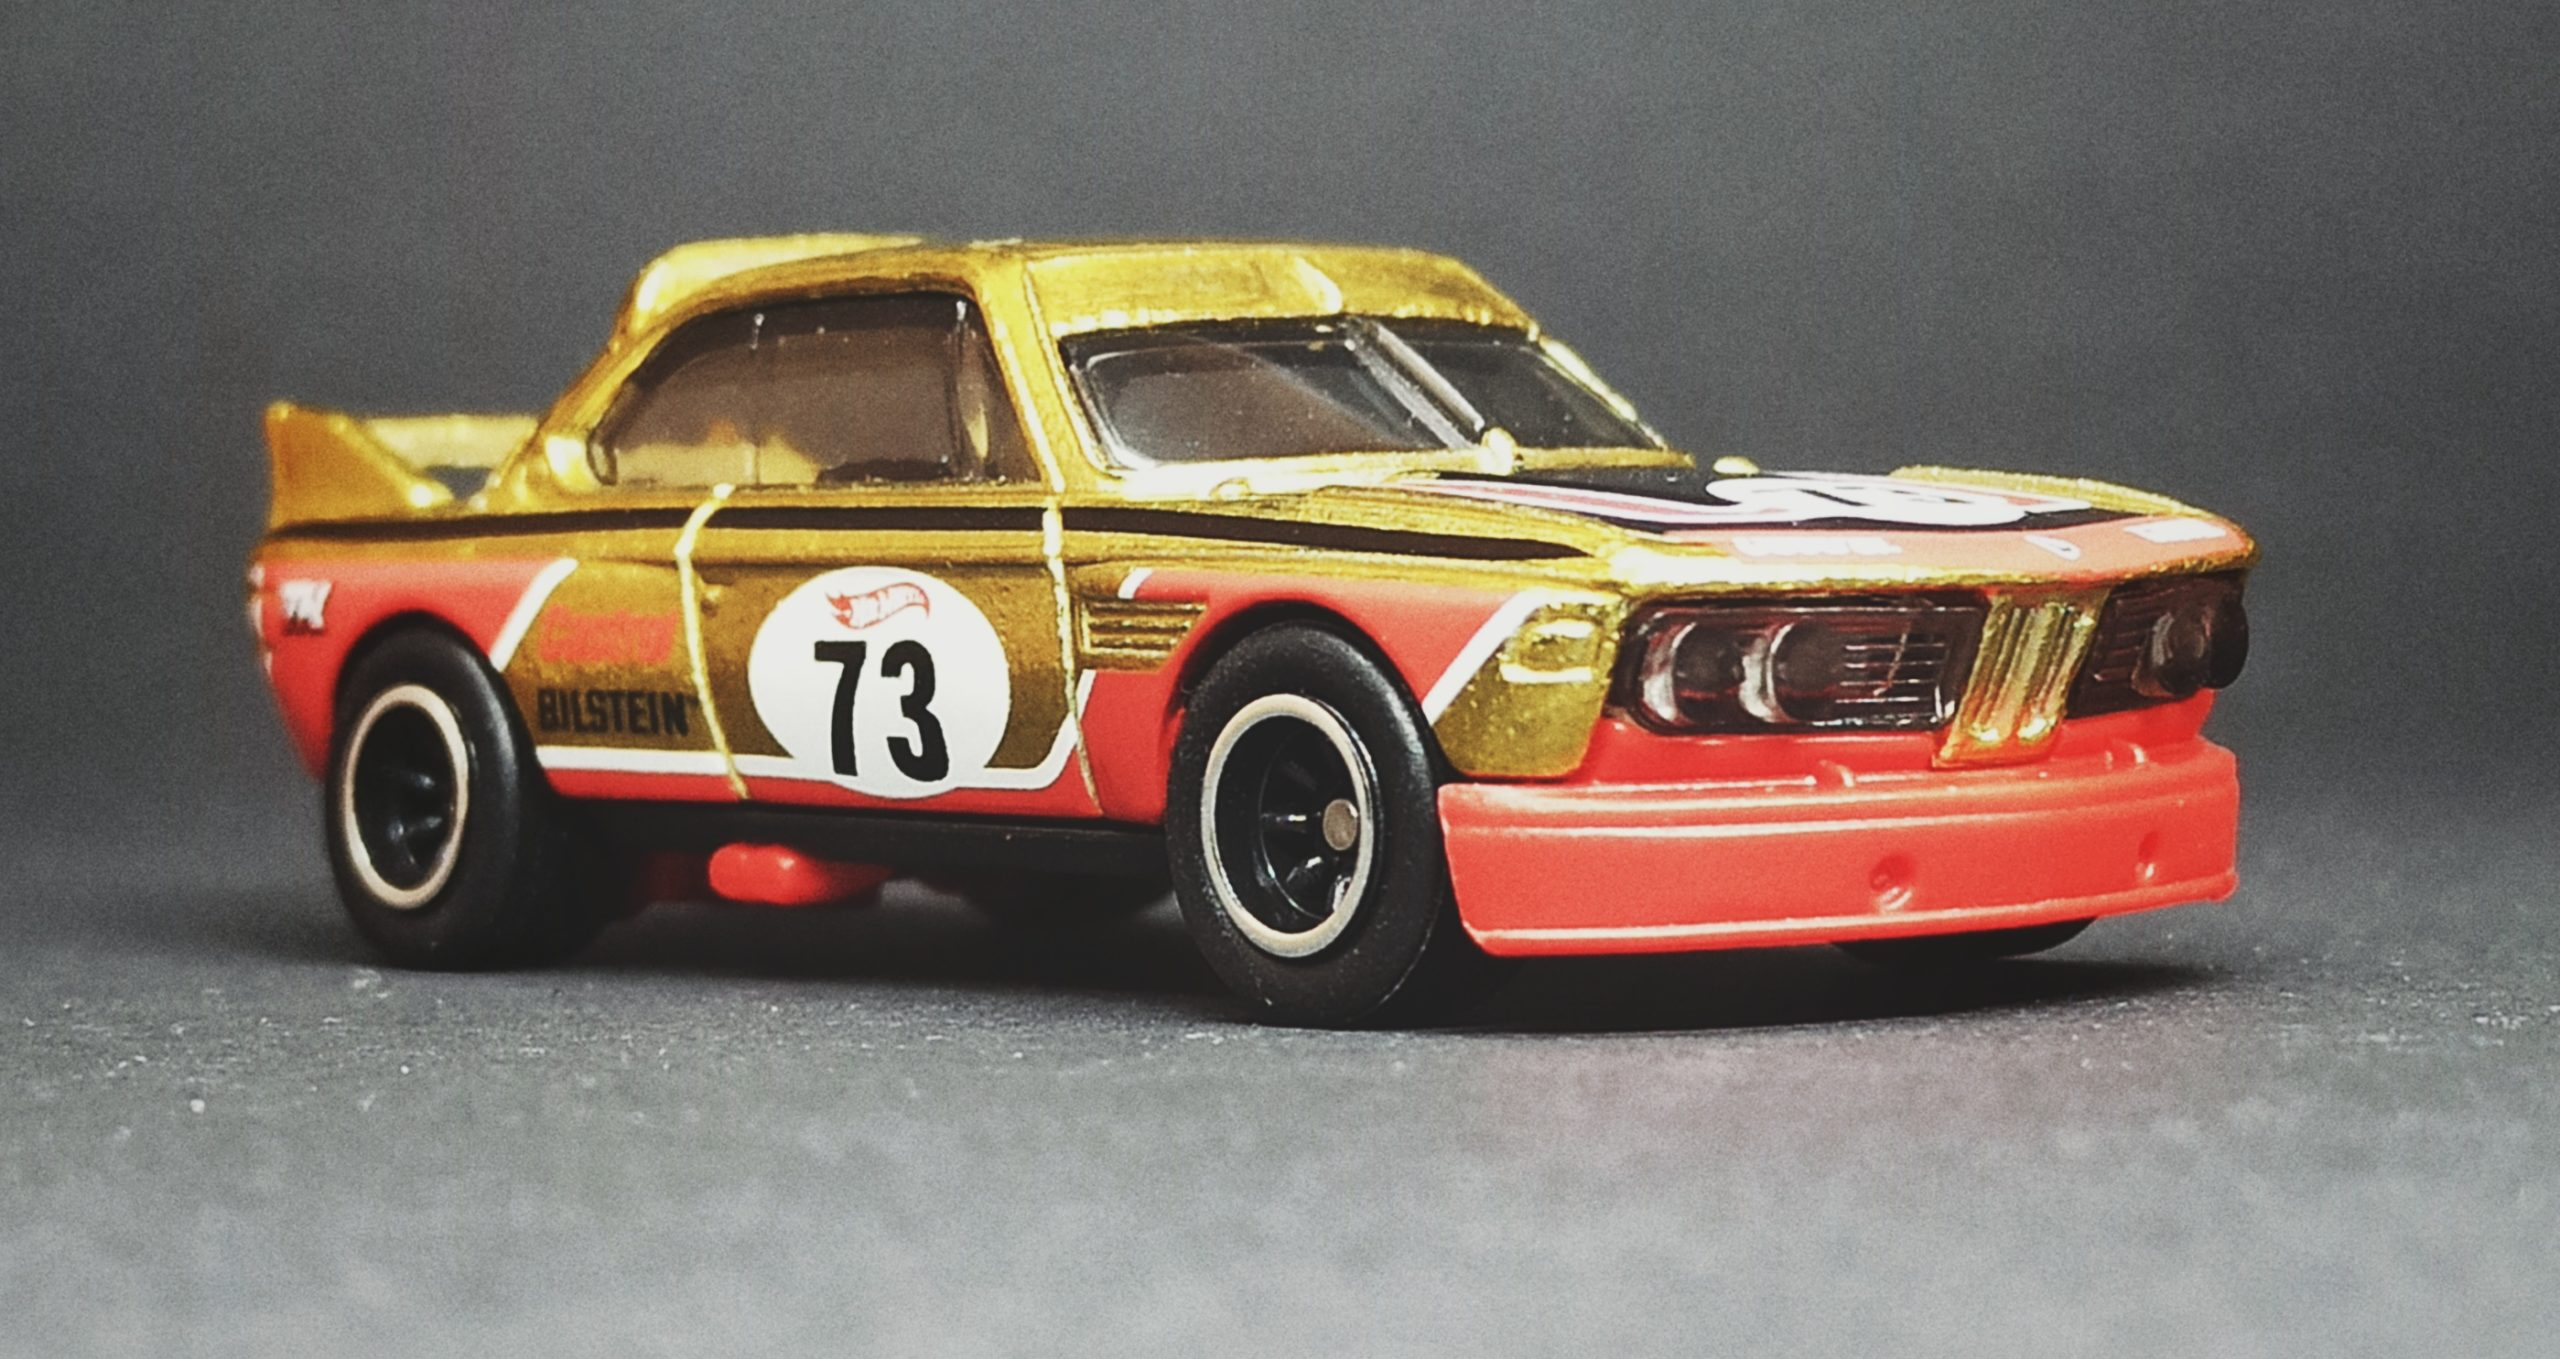 Hot Wheels '73 BMW 3.0 CSL Race Car (HCY20) 2022 (34/250) Retro Racers (2/10) spectraflame yellow (gold) Super Treasure Hunt (STH) side angle